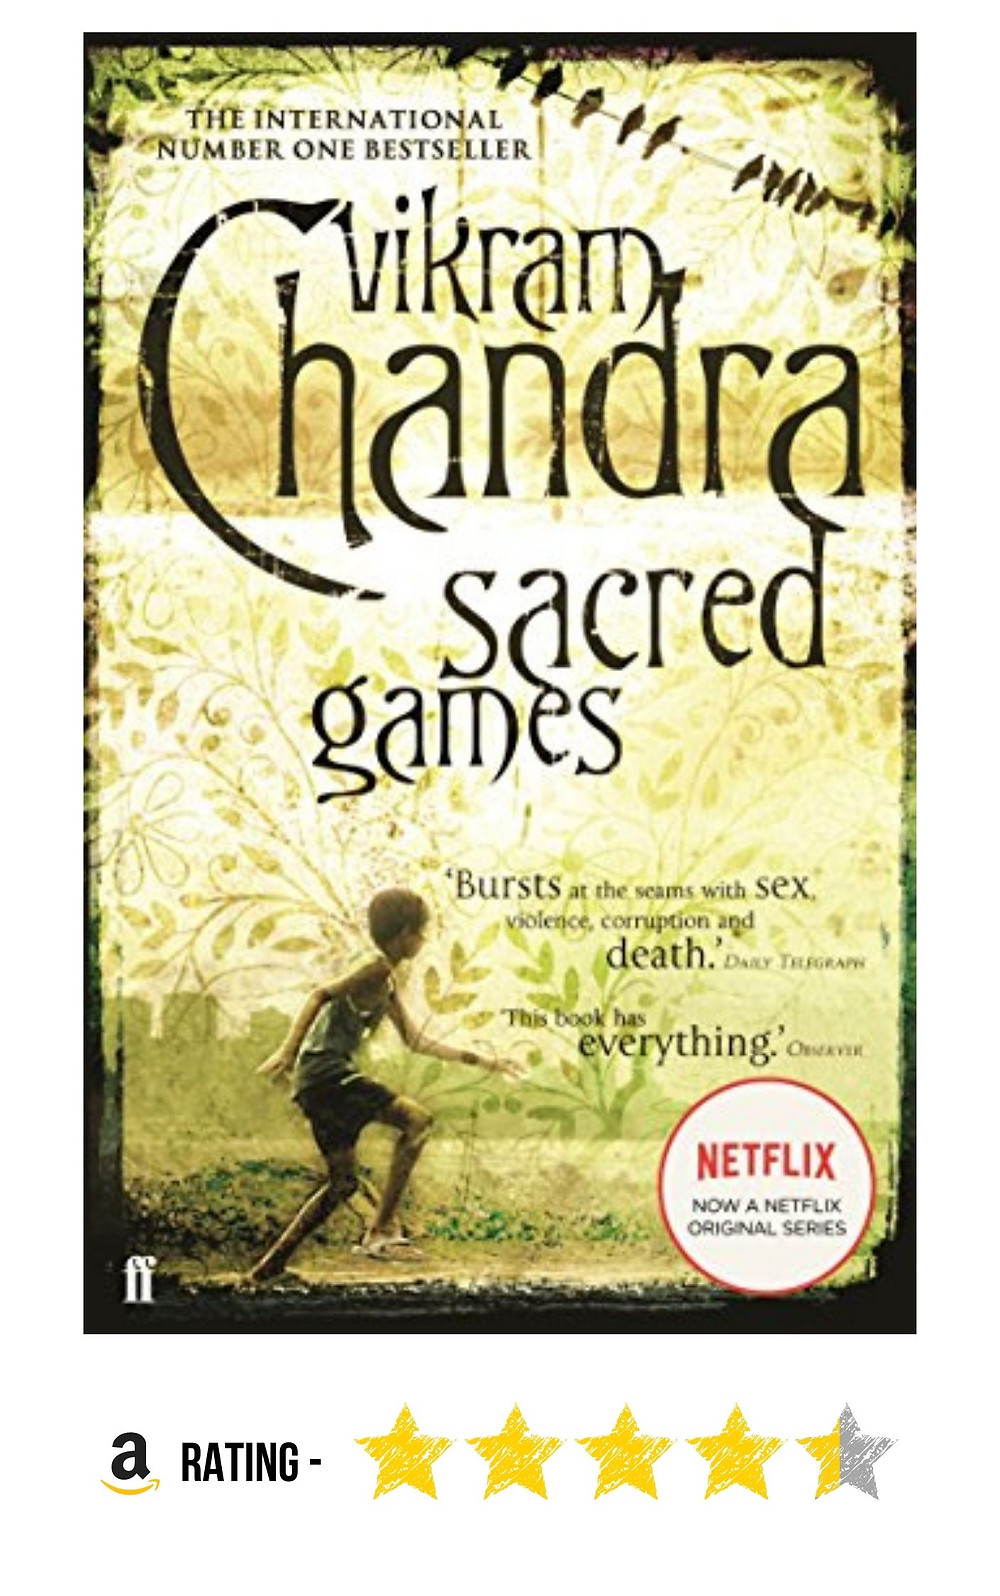 Amazon purchase Link to Vikram Chandra's crime thriller 'Sacred Games'